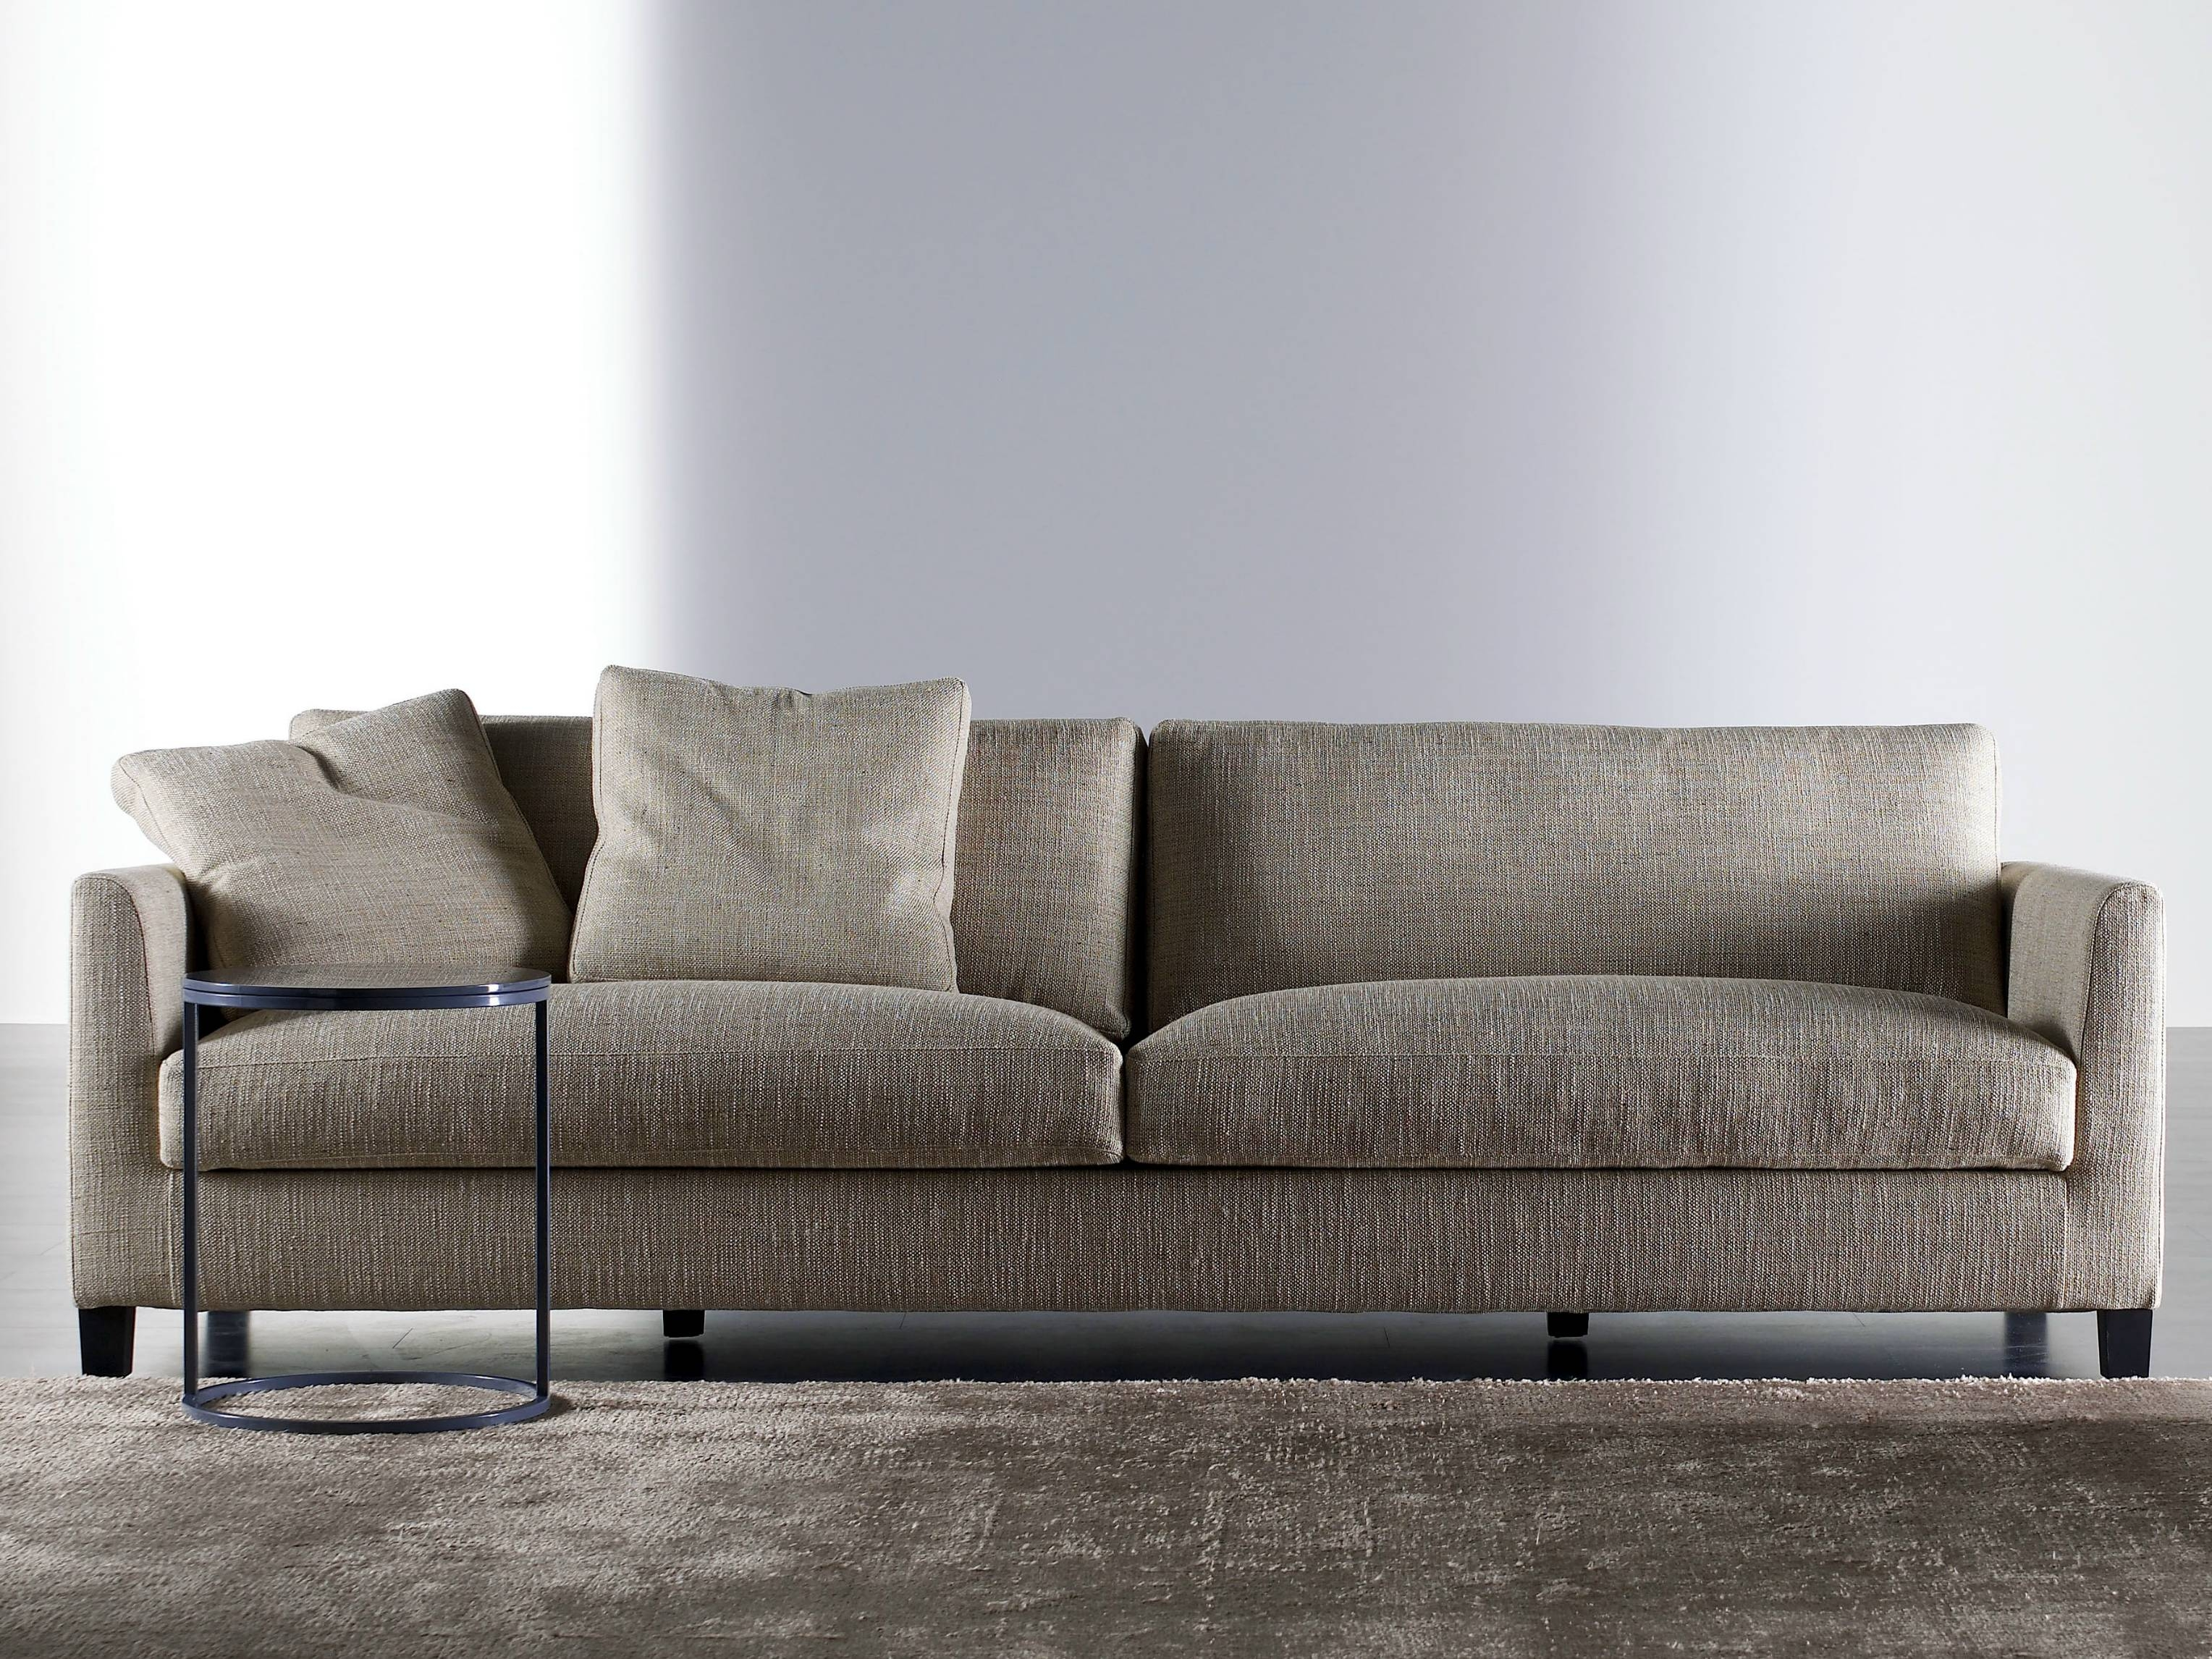 Bissè | Sofameridiani pertaining to Sofa With Removable Cover (Image 2 of 30)